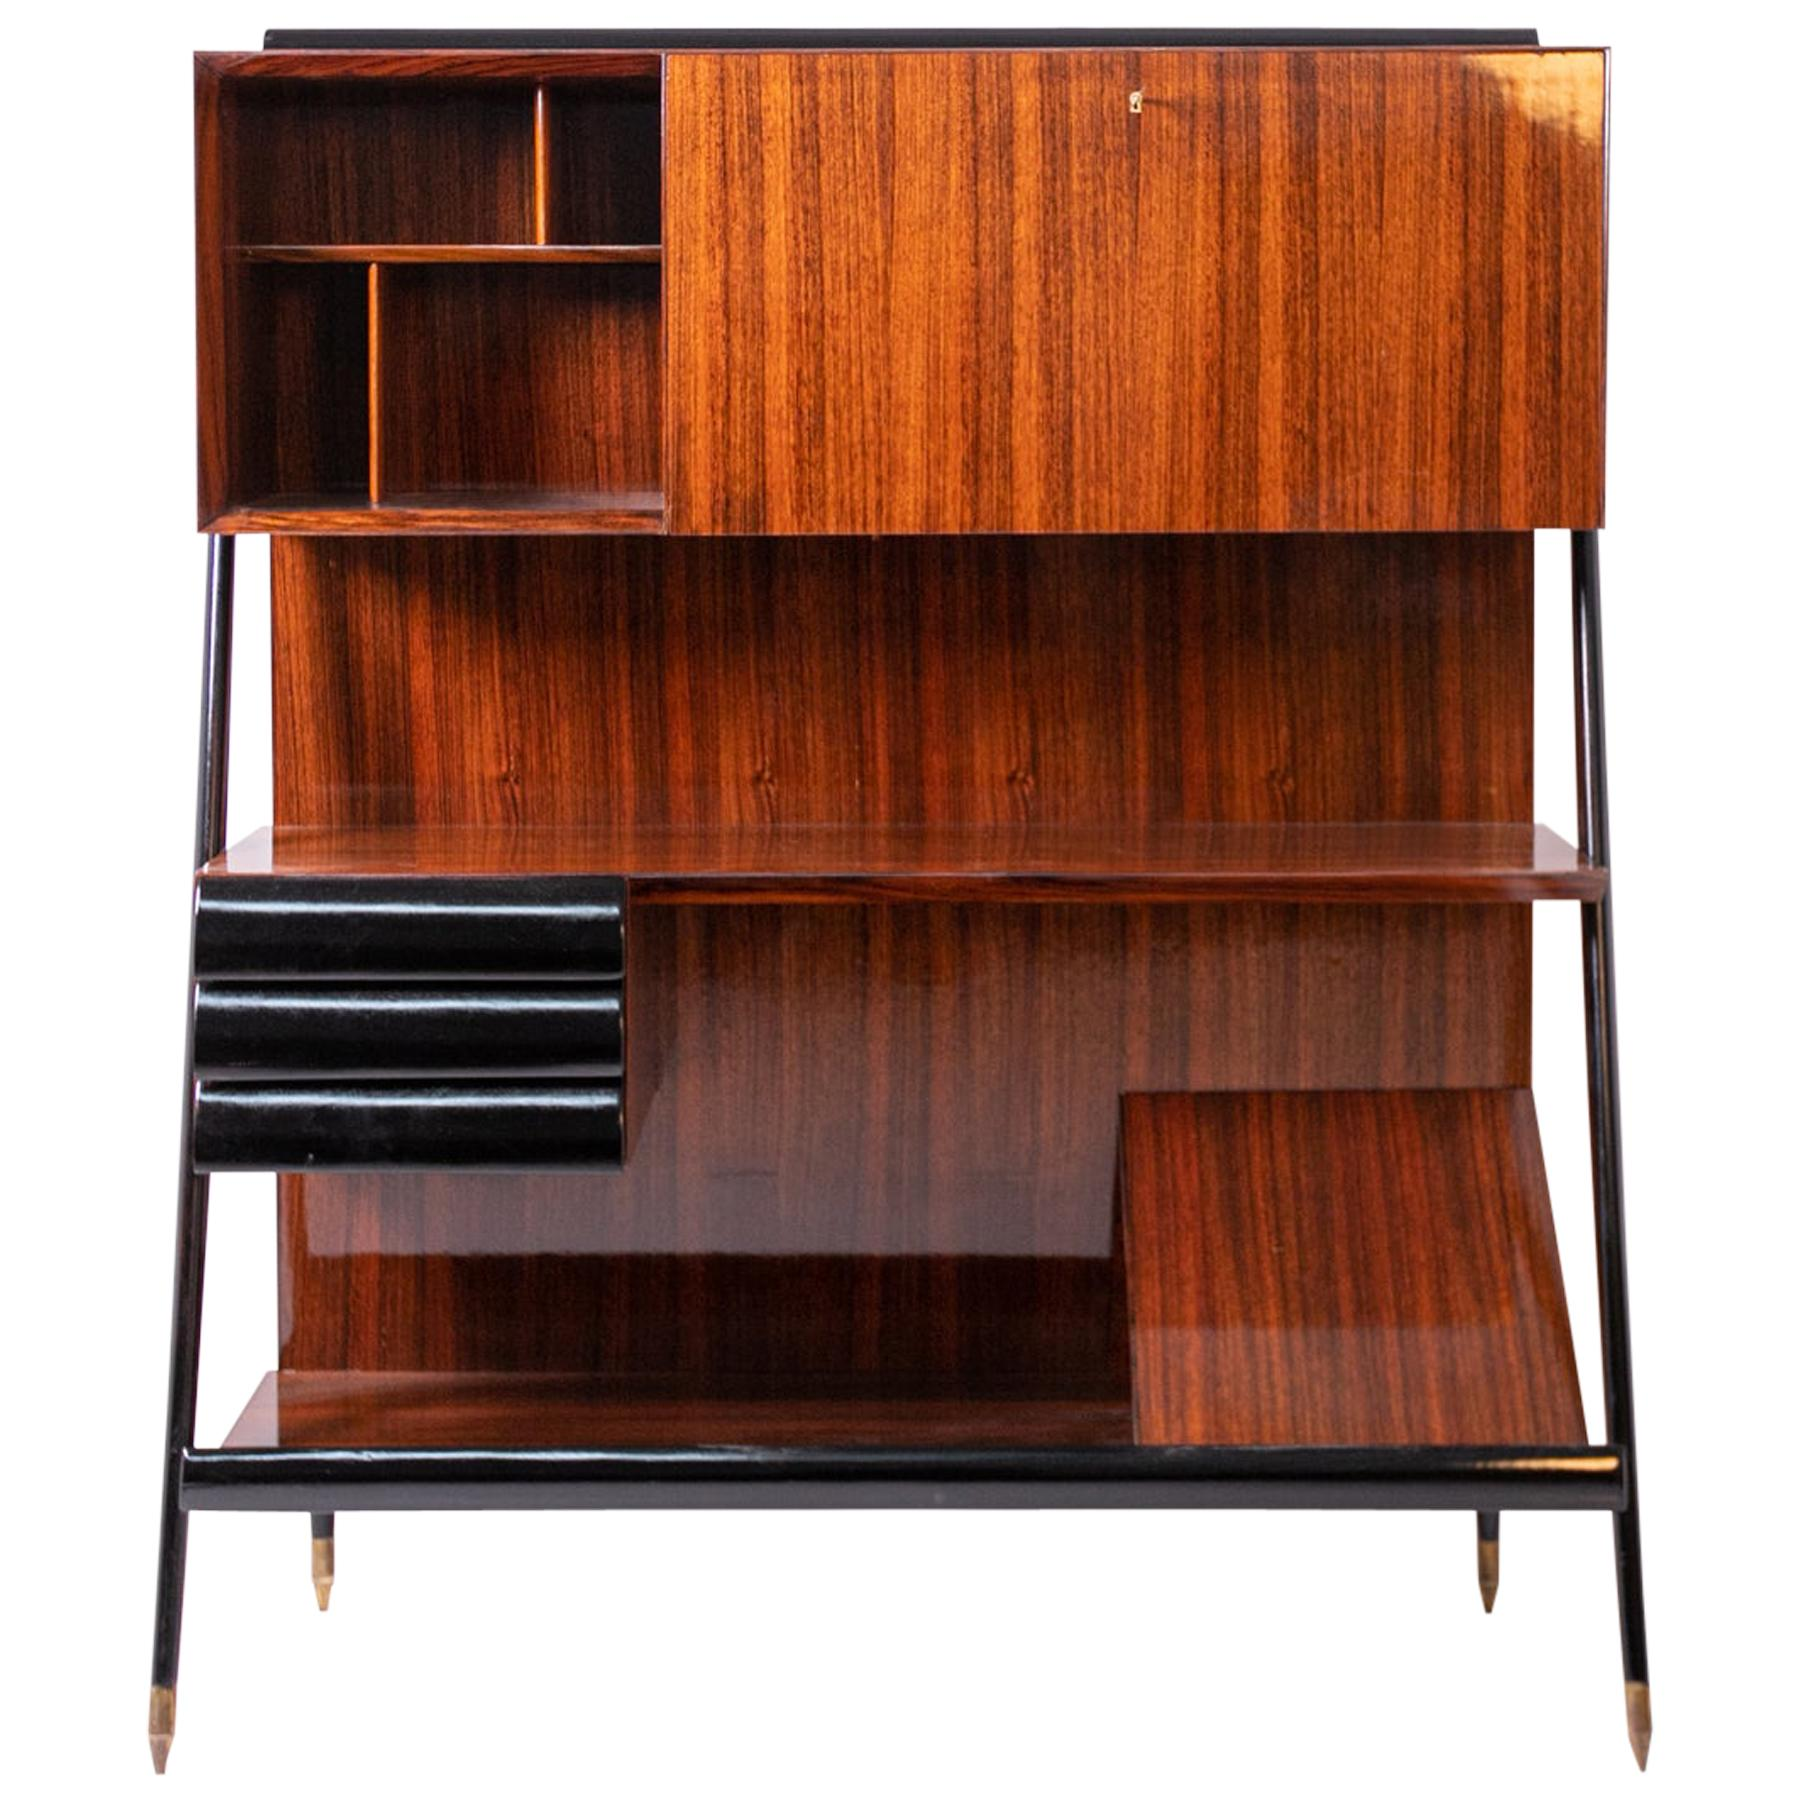 Bookcase Attributed to Ico Parisi in Ebonized Wood, 1950s